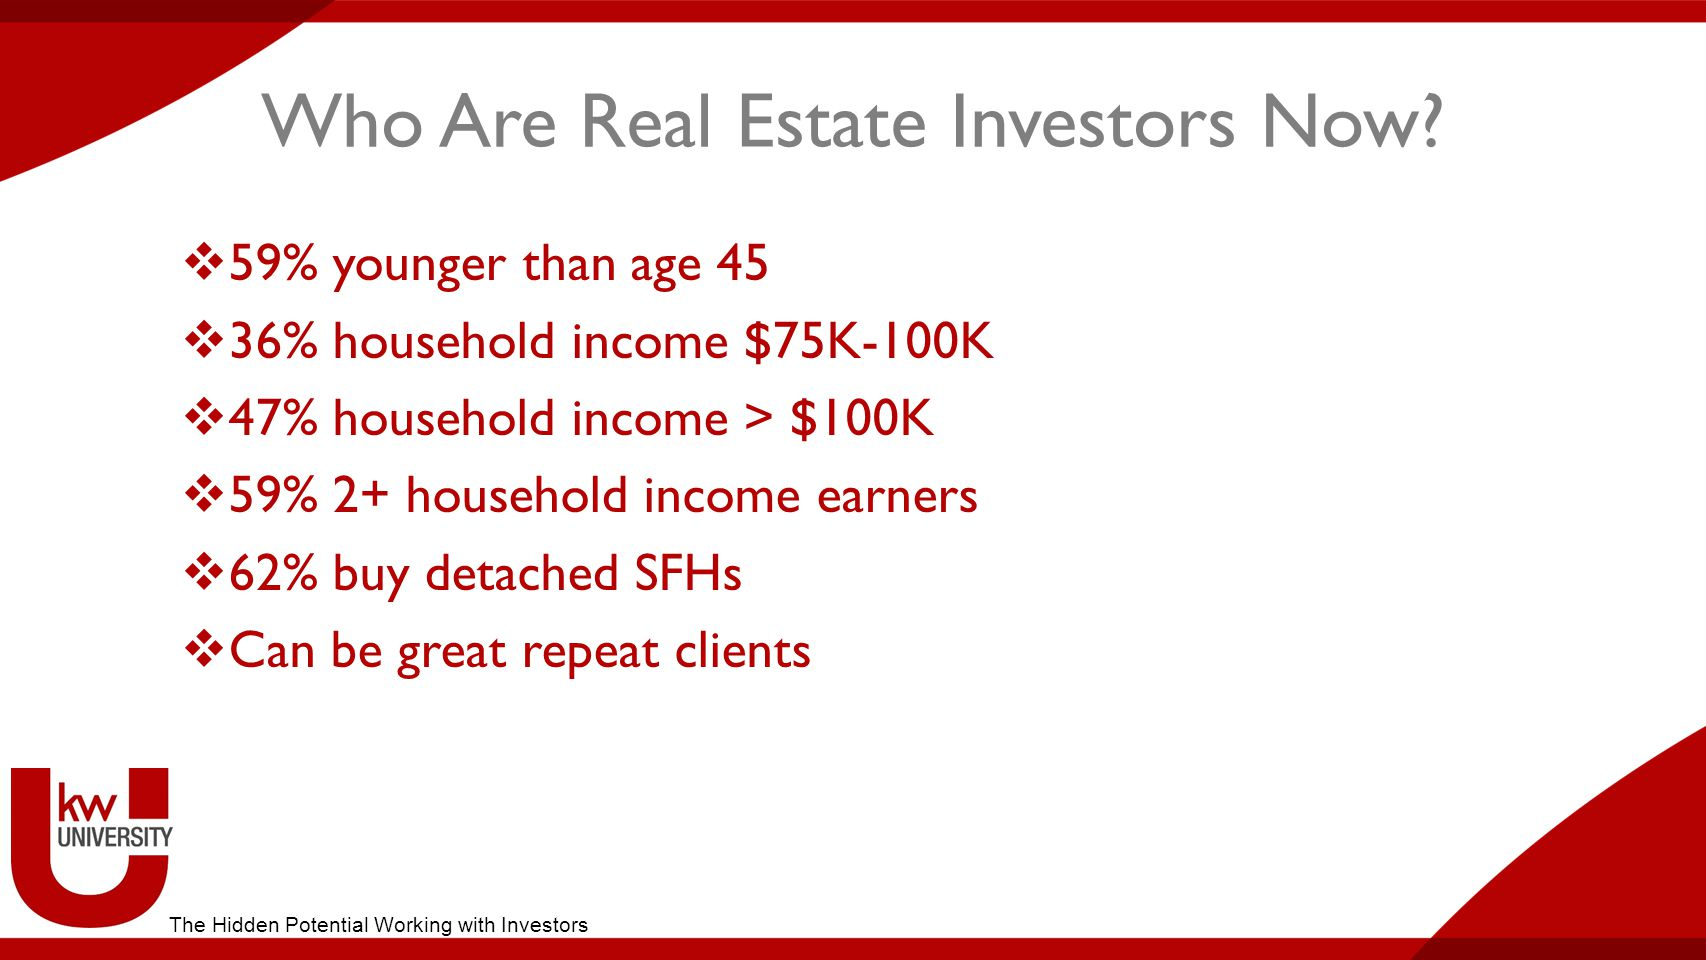 Who Are Real Estate Investors Now.